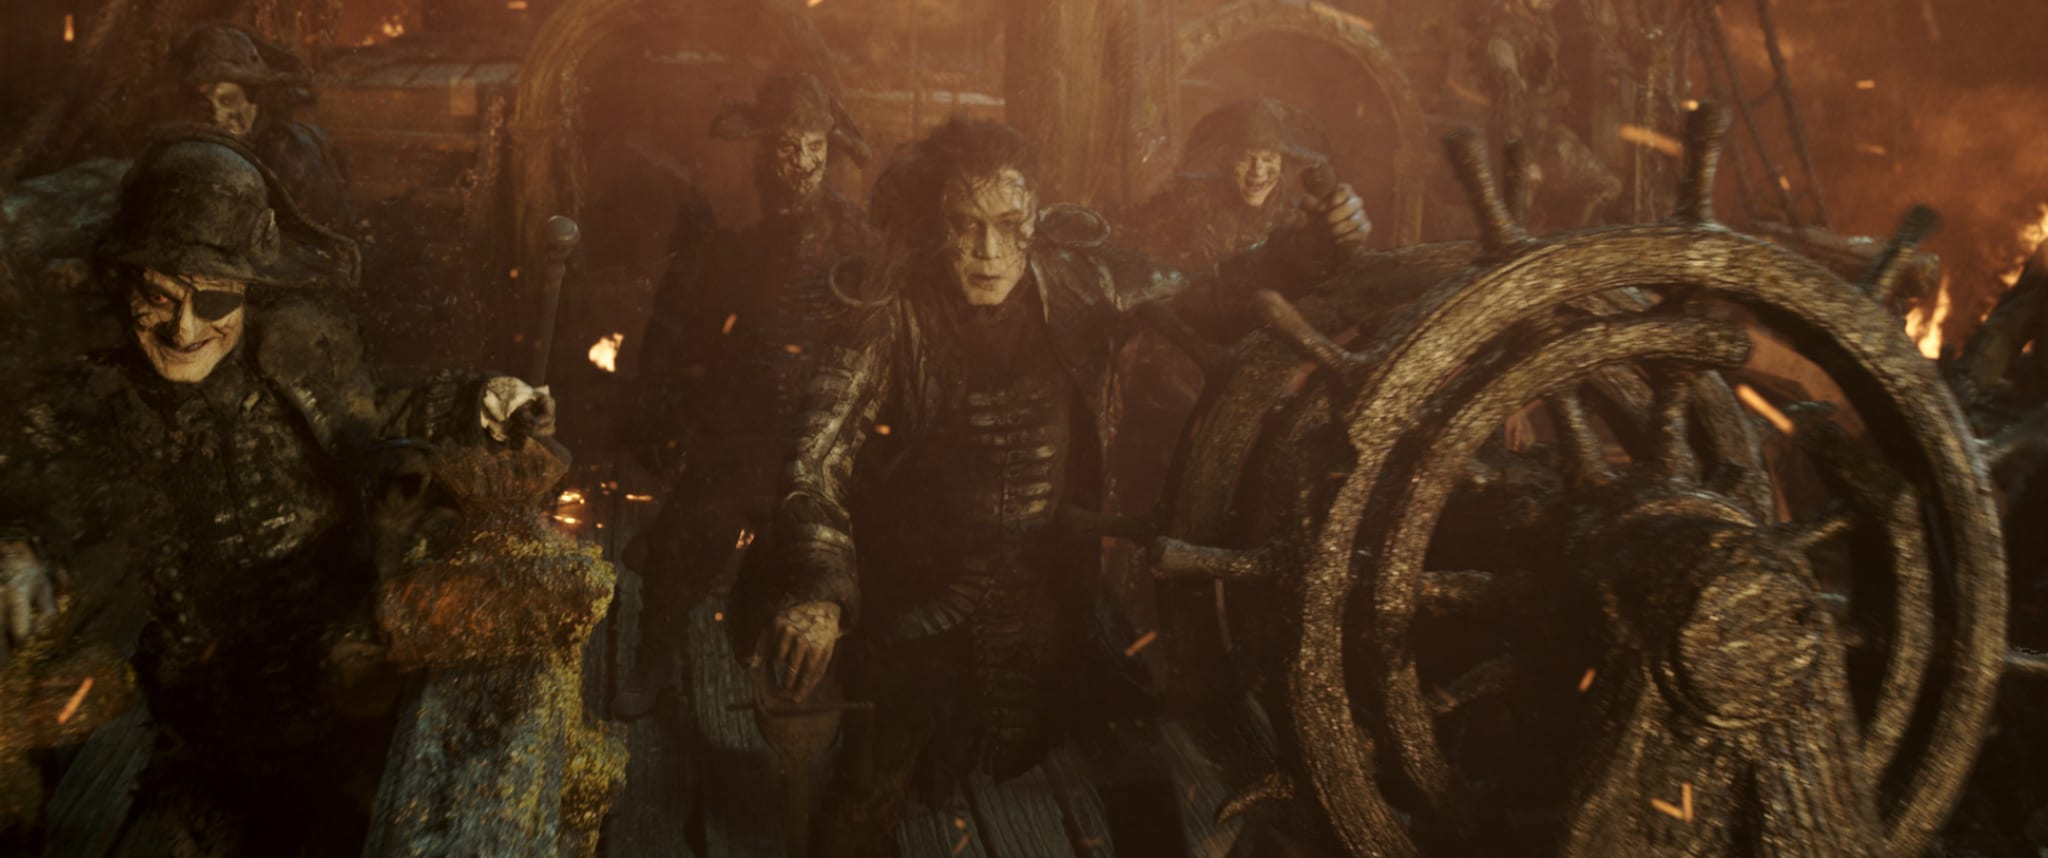 Pirates of the Caribbean:Salazar's Revenge Gallery